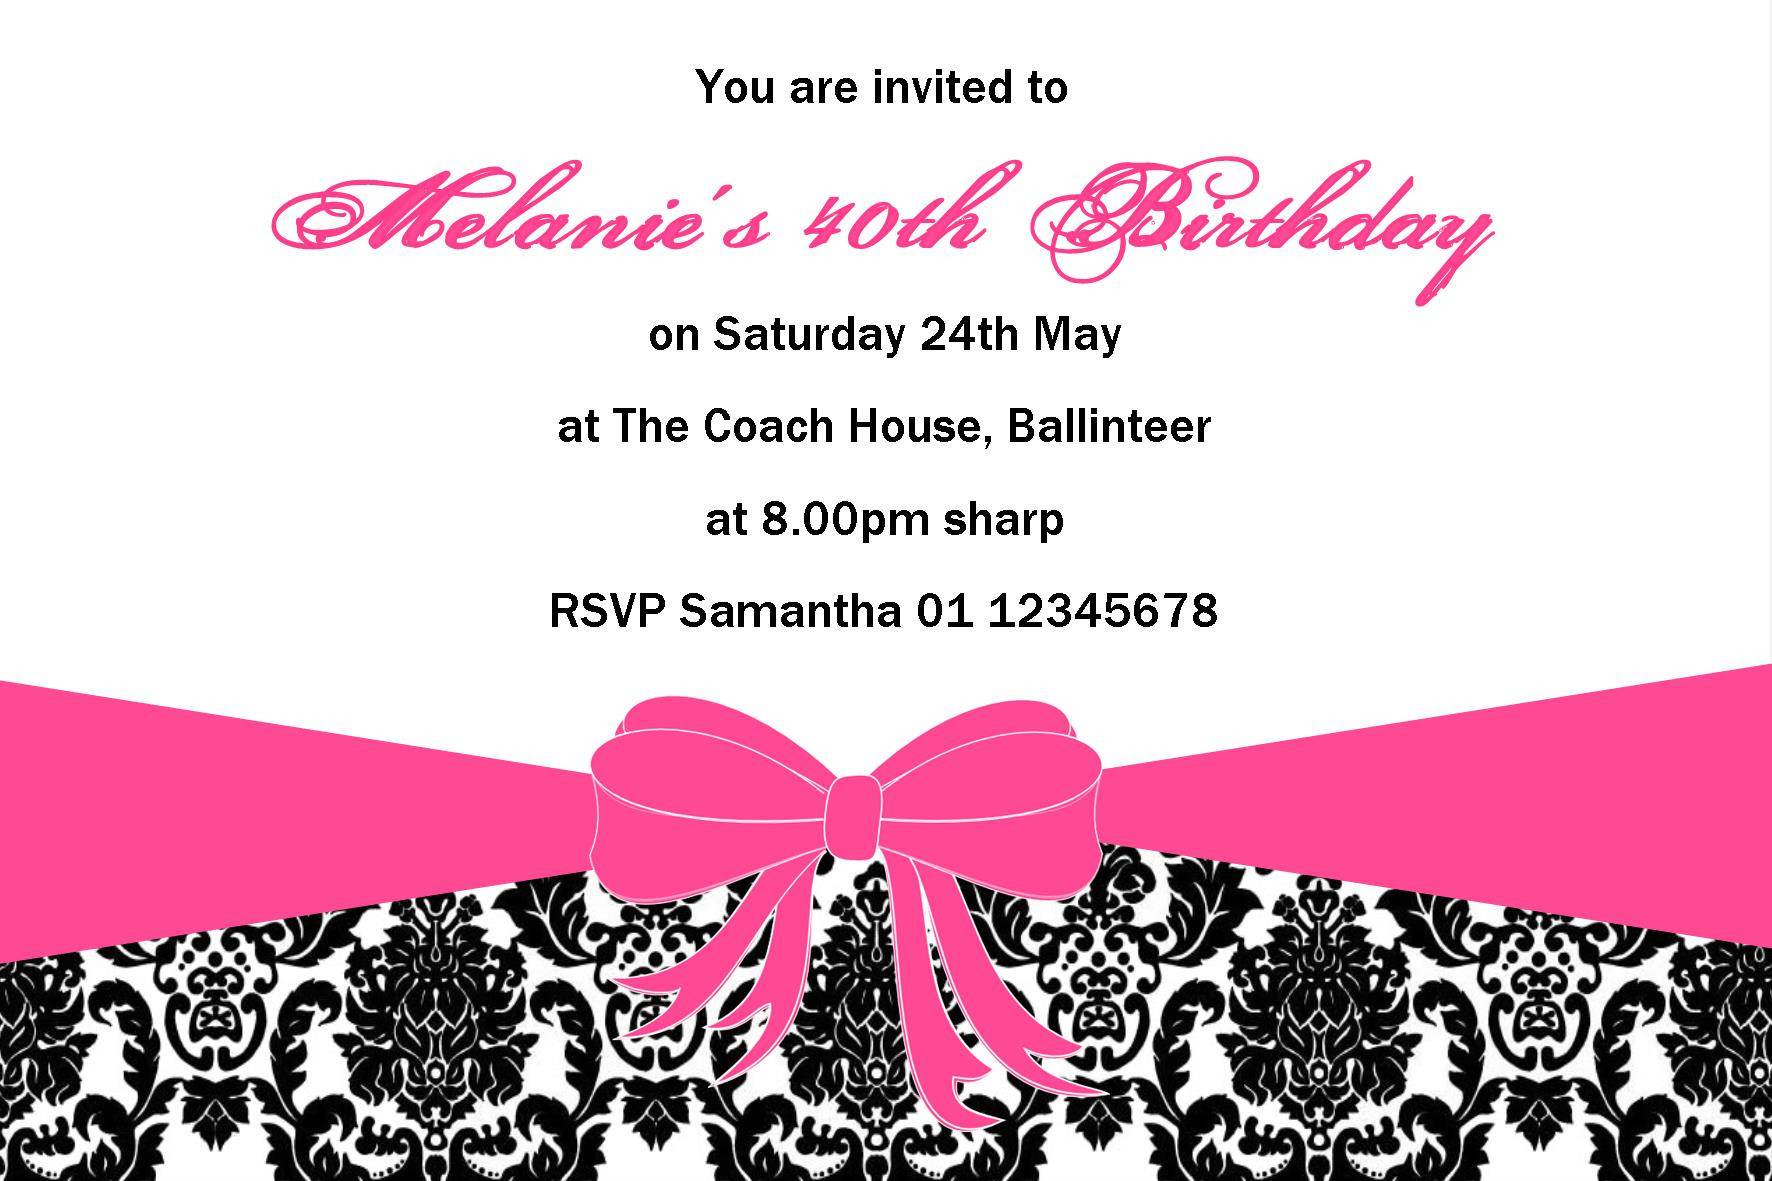 Best ideas about Design Birthday Invitations . Save or Pin Personalised Birthday Invitation Design 1 Now.